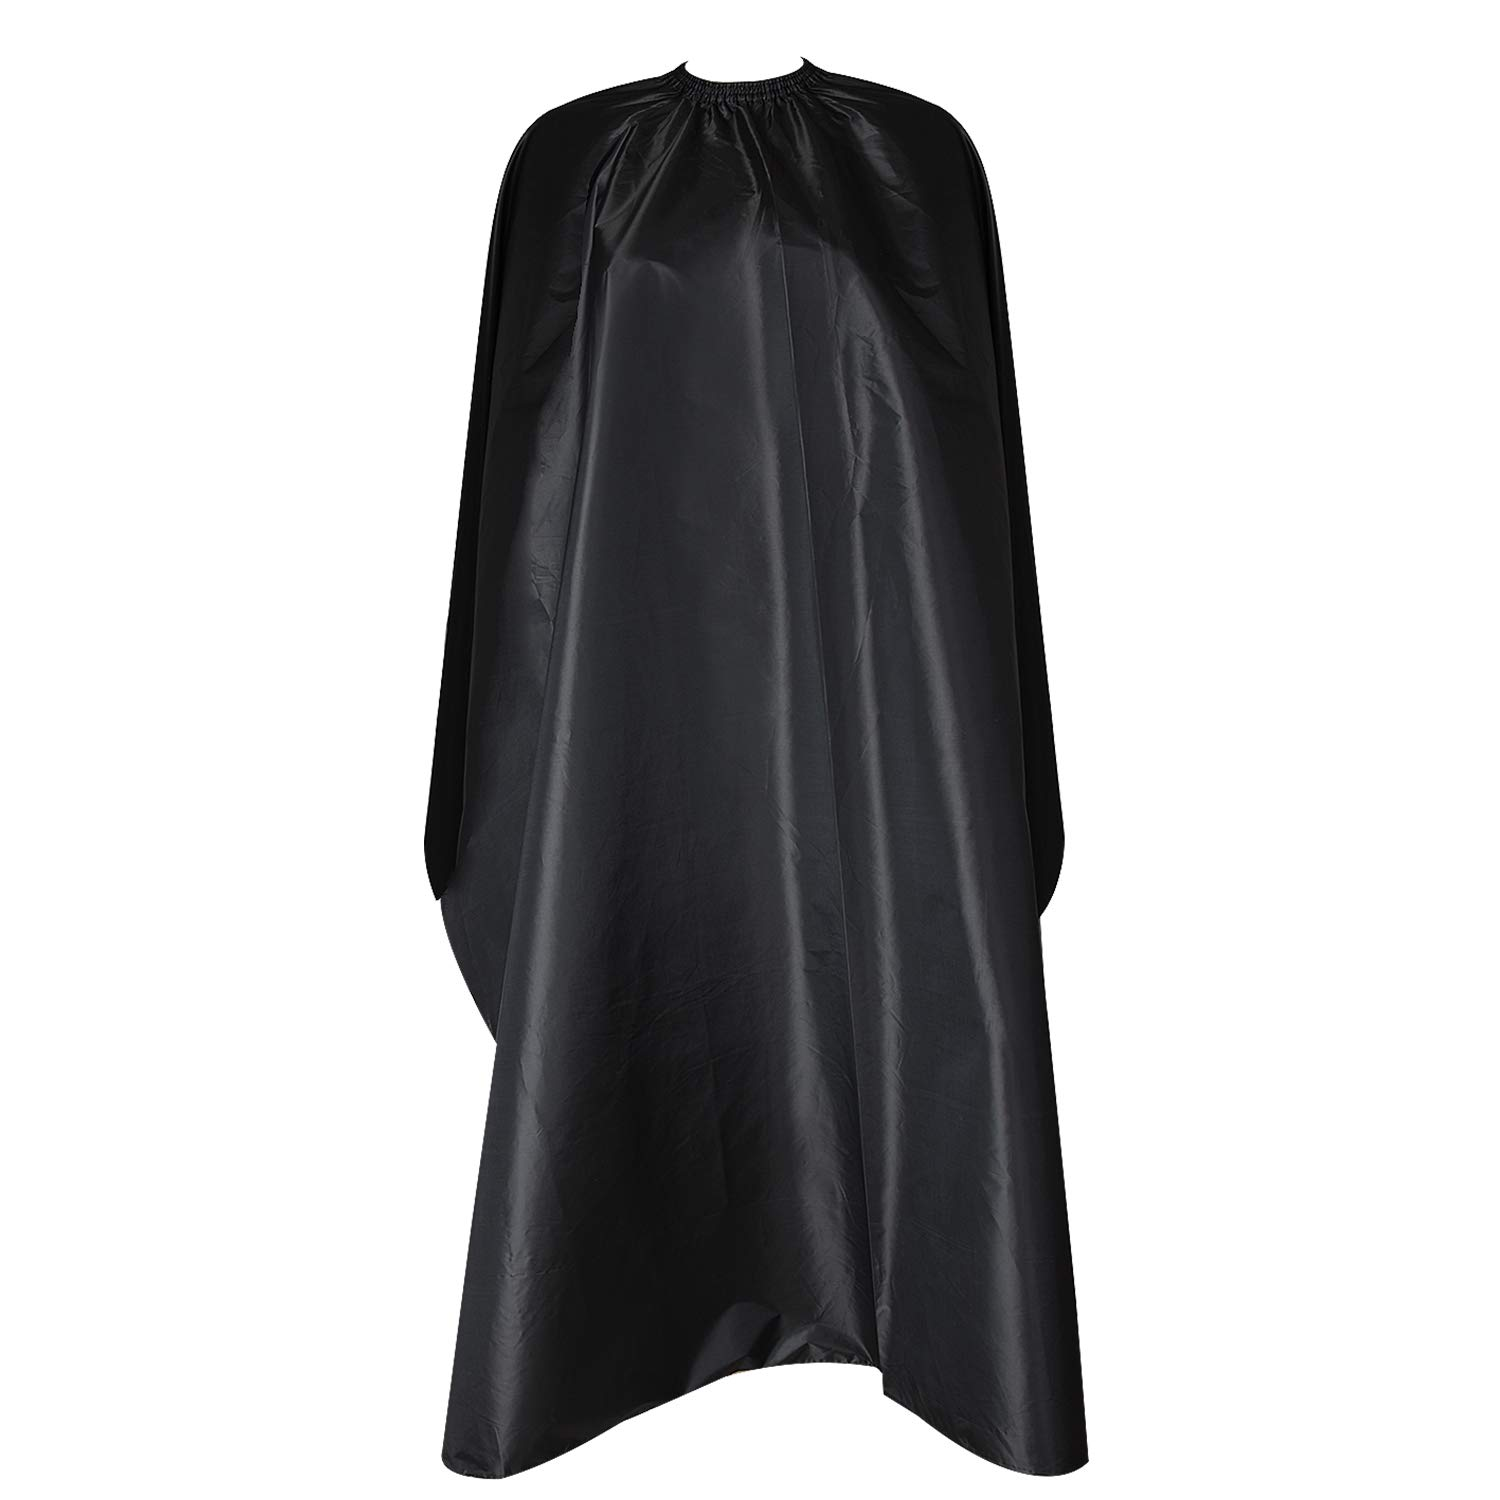 Noverlife Stain & Water Proof Haircut Cape, 67x60'' Large Barber Cape for Shampoo Chemical Treatments, Adjustable Closure Hair Salon Cape Hairdressing Cloak Smock for Hair Styling Coloring Hair Dye by Noverlife